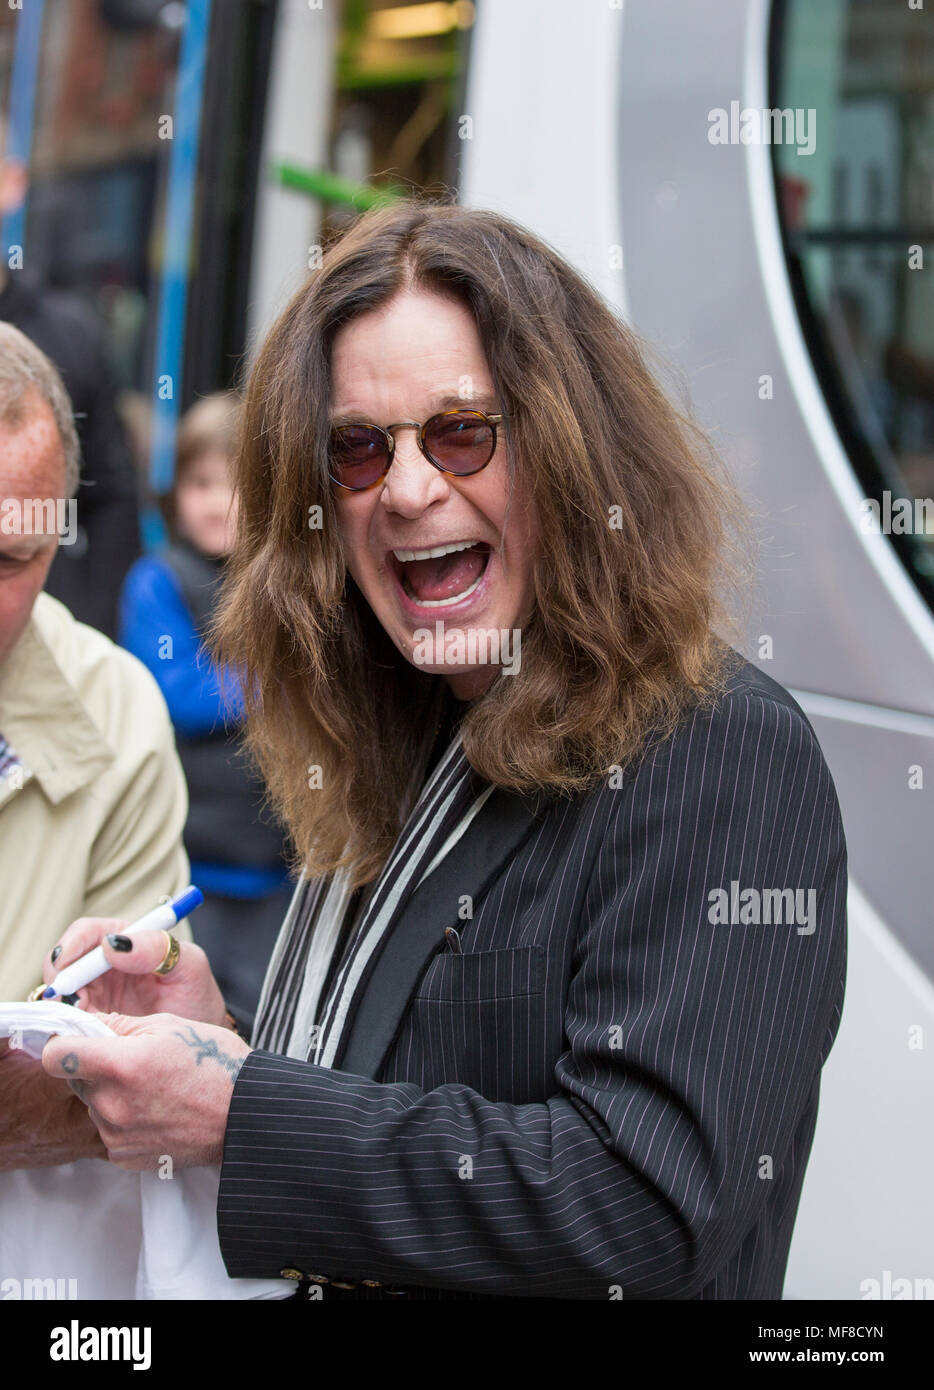 Ozzy Osbourne at an ceremony in Birmingham to name a tram after him - Stock Image